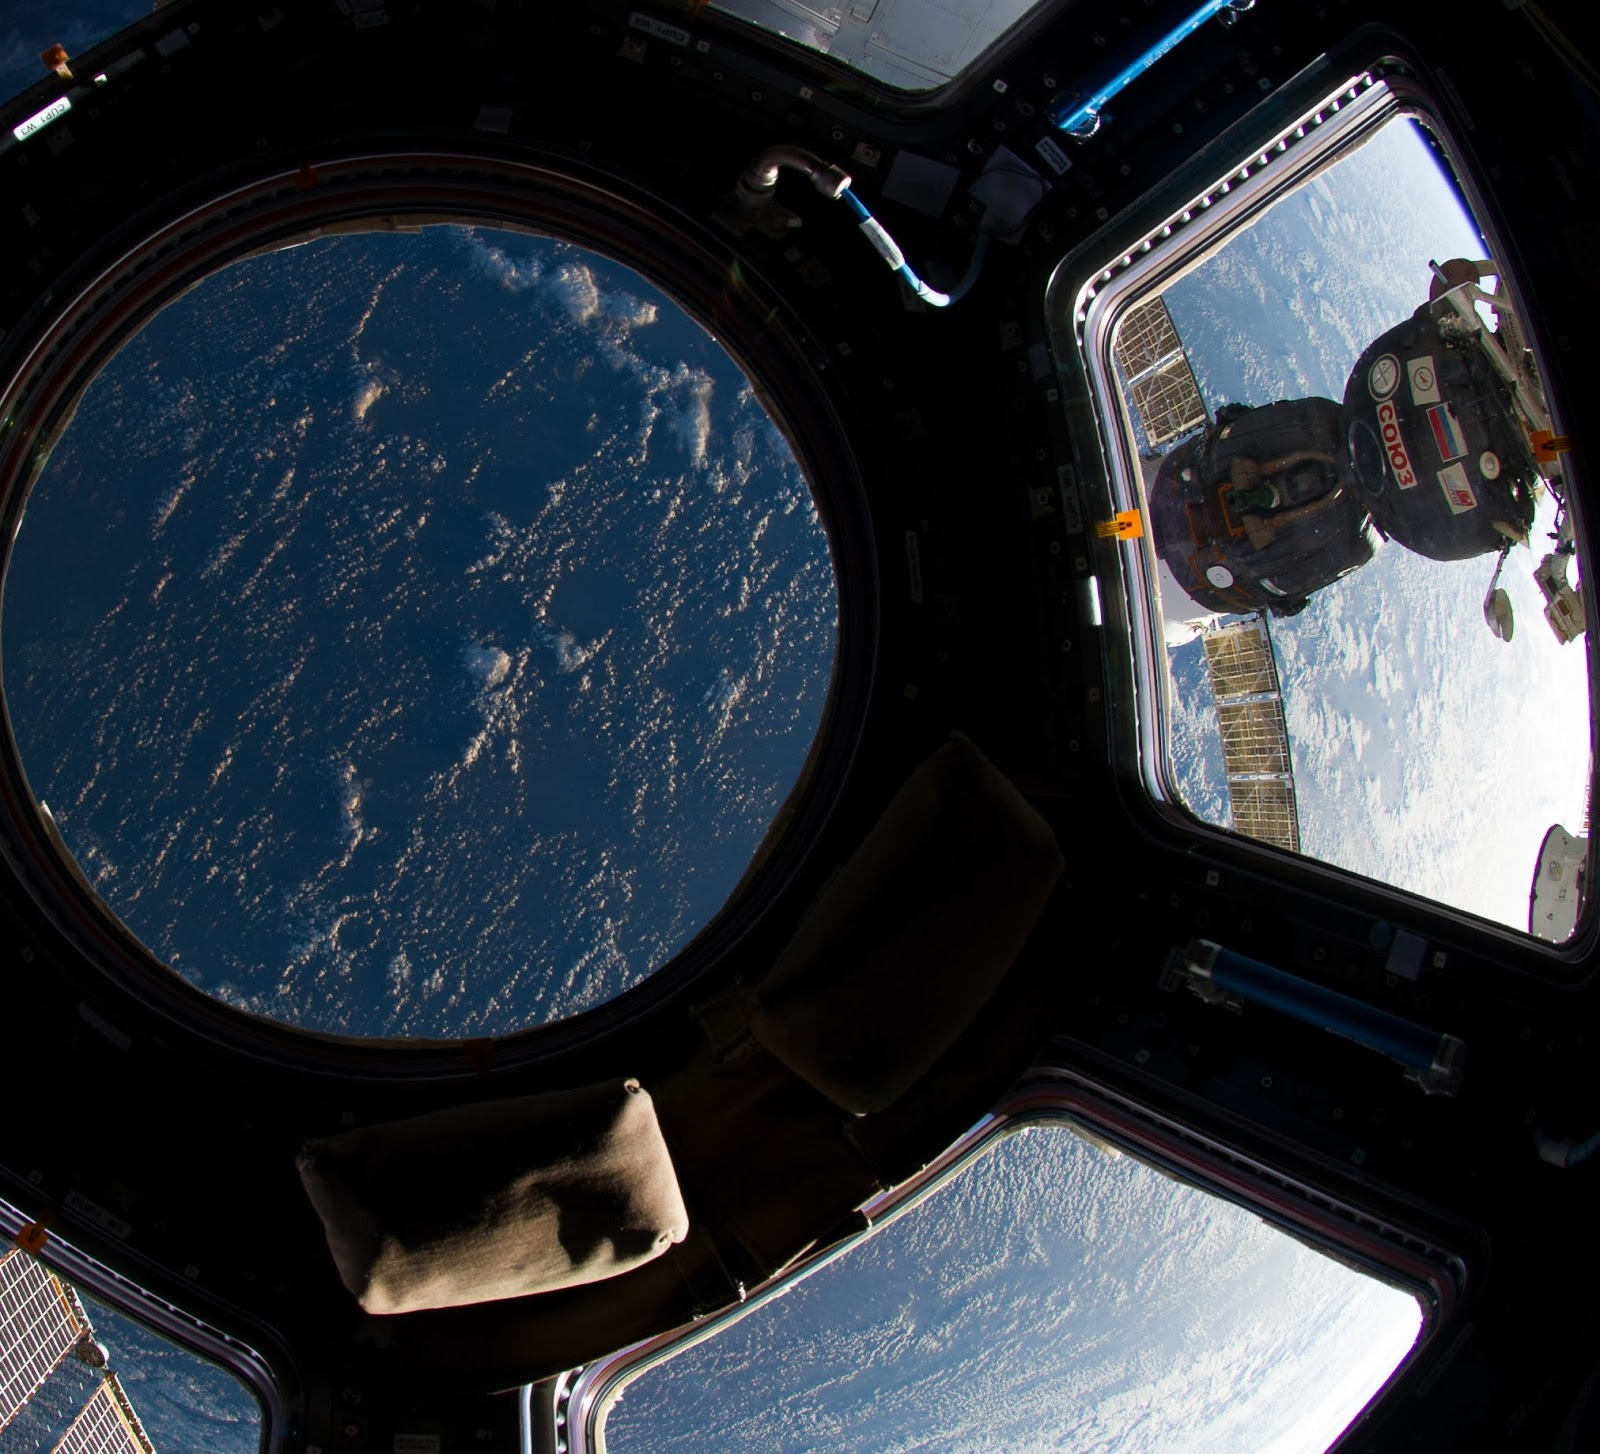 space station sightings - HD2784×1848